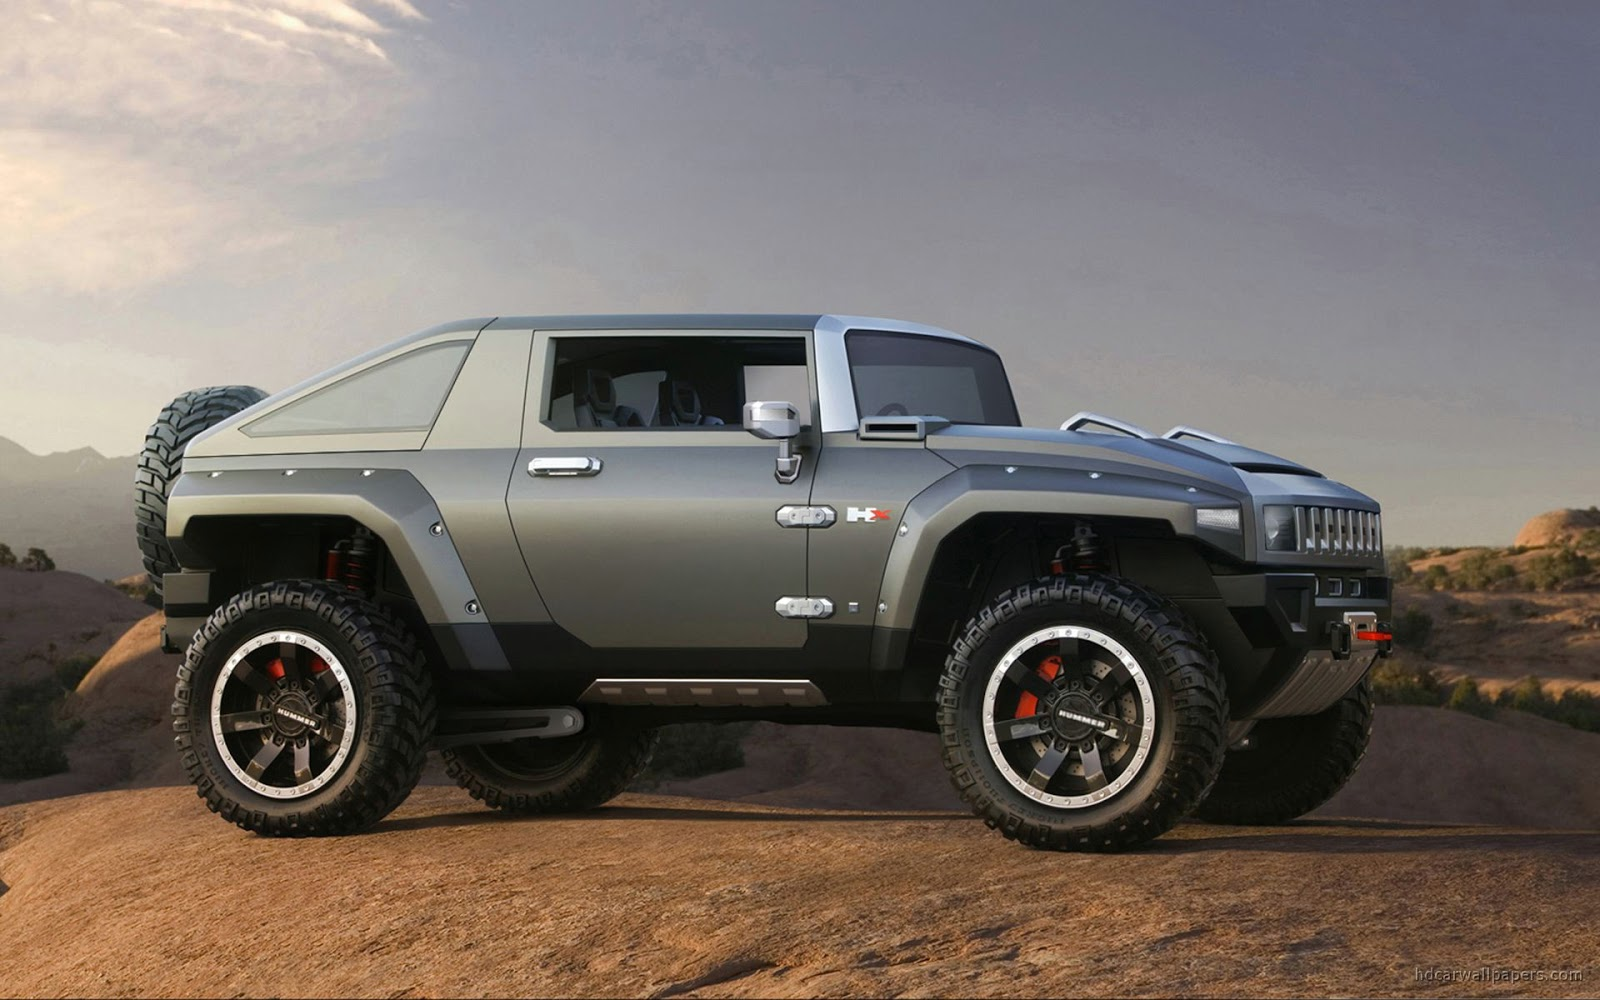 hummer car hd wallpapers hummer car hd wallpapers hummer car hd